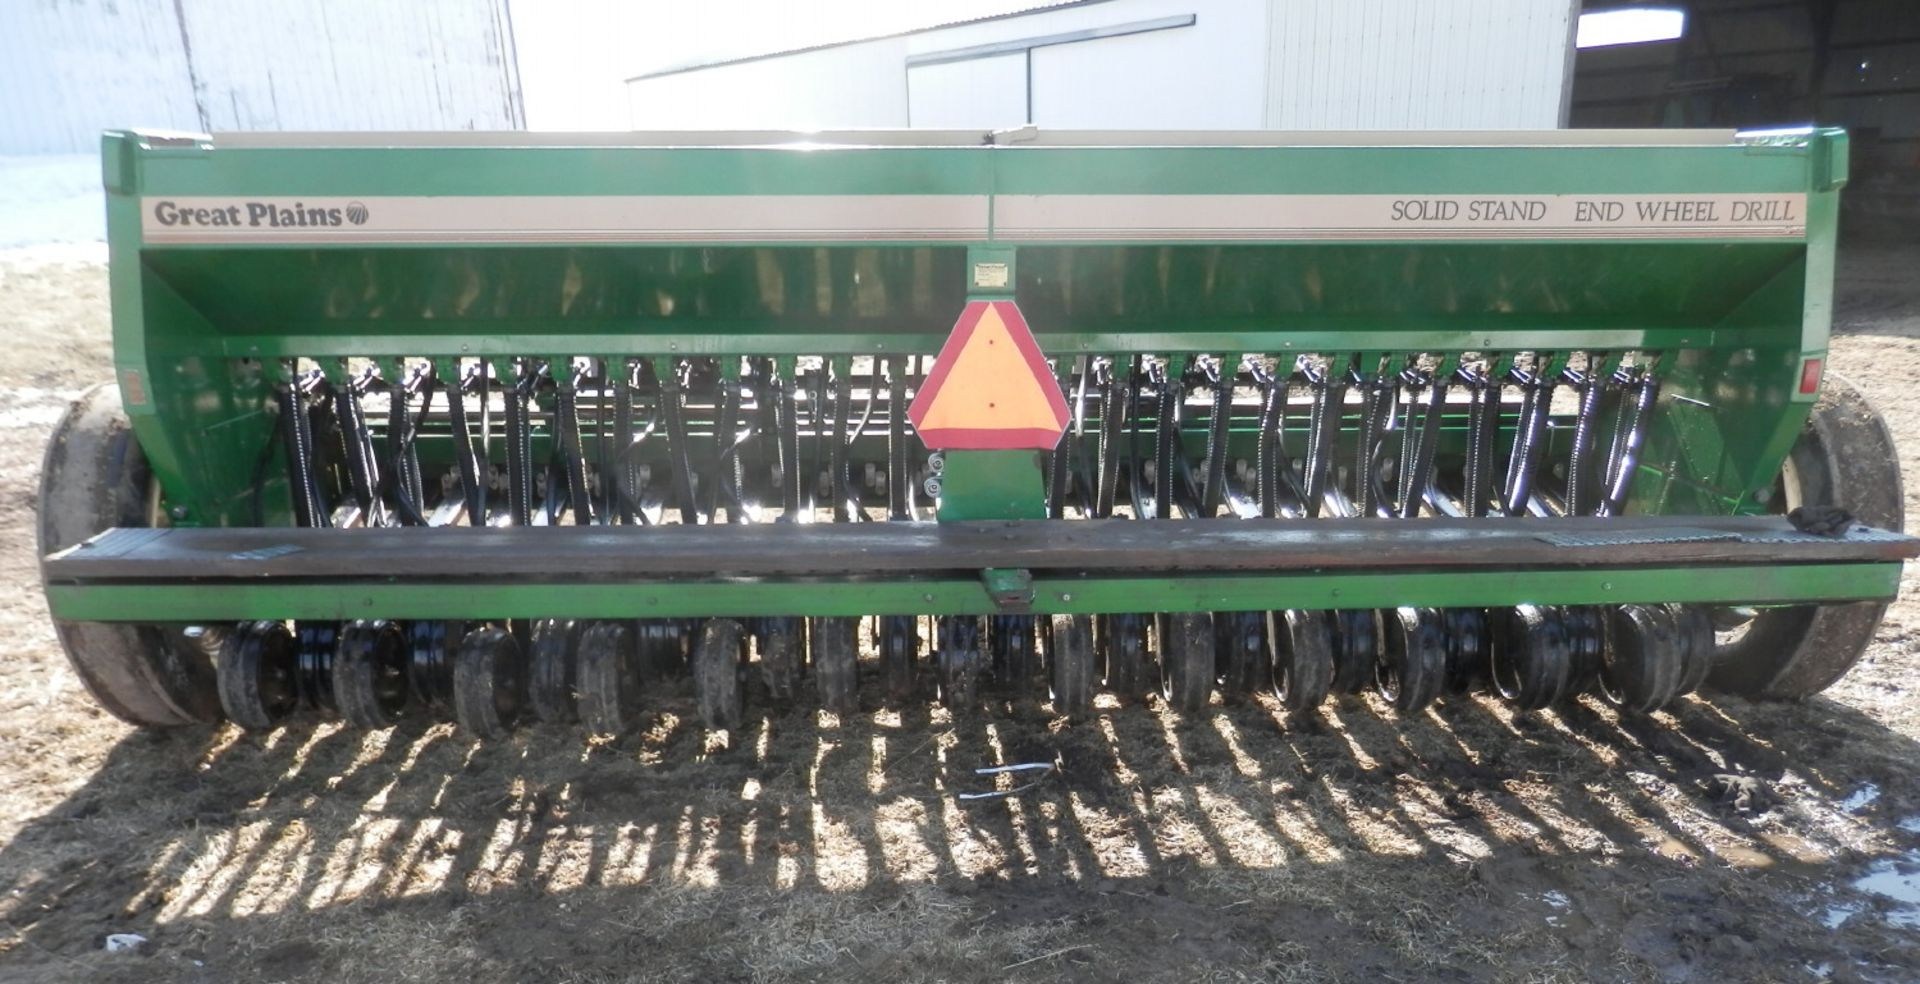 GREAT PLAINS SURESTAND 13 MDL EWD13-260693 26x6 GRAIN DRILL - Image 5 of 11